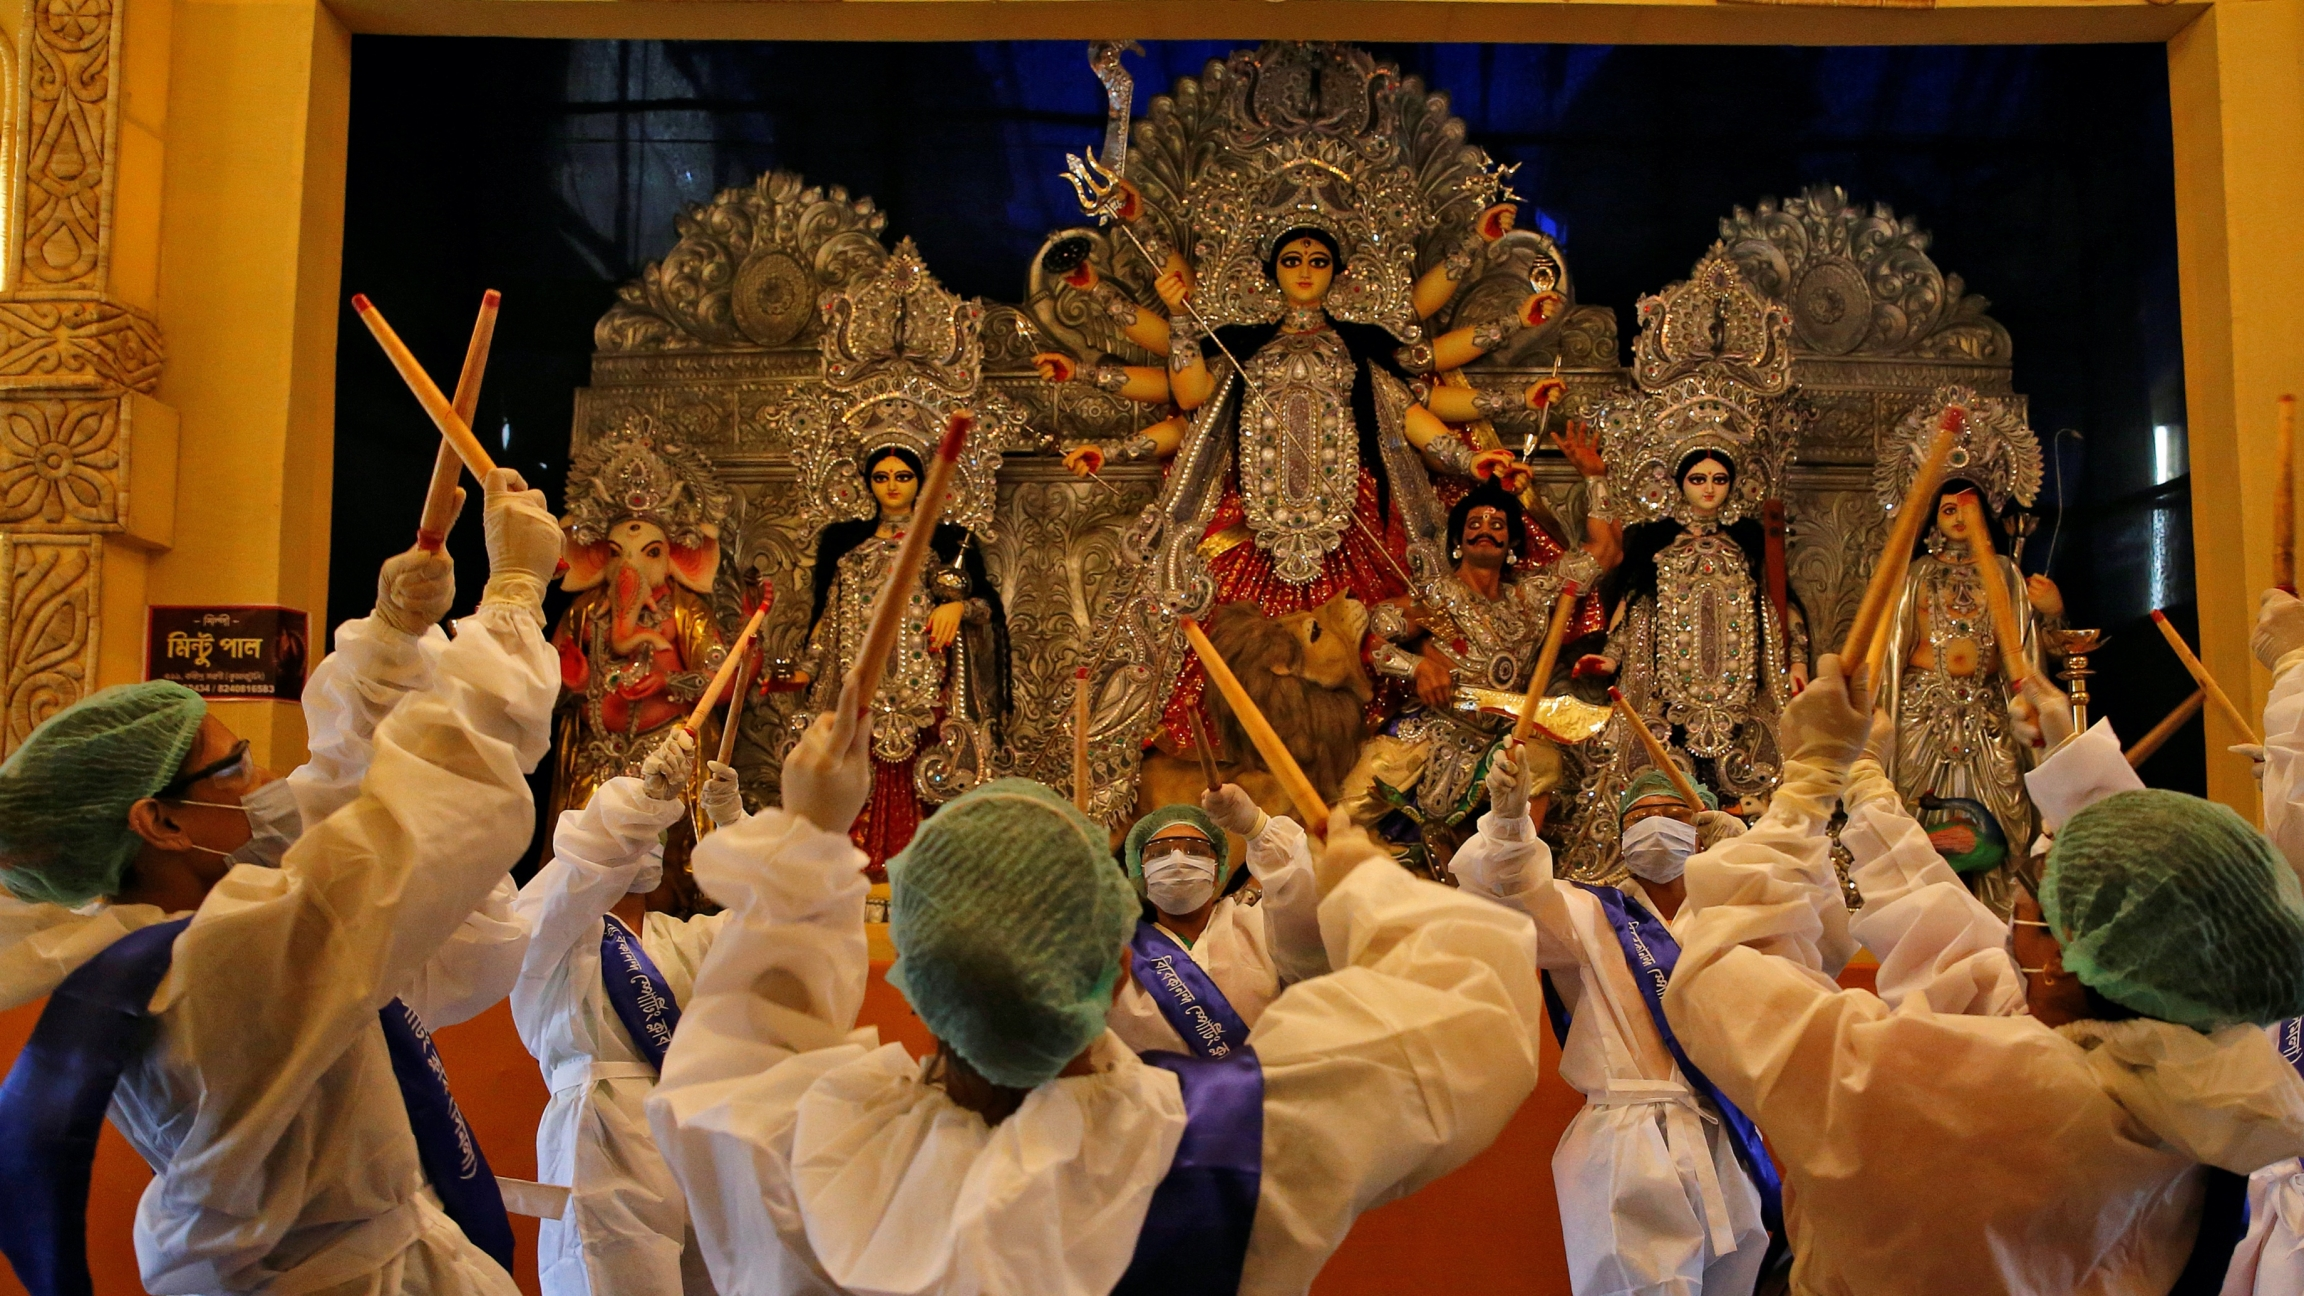 People wearing protective gear worship in front of a 10-armed ornate goddess idol on a platform.